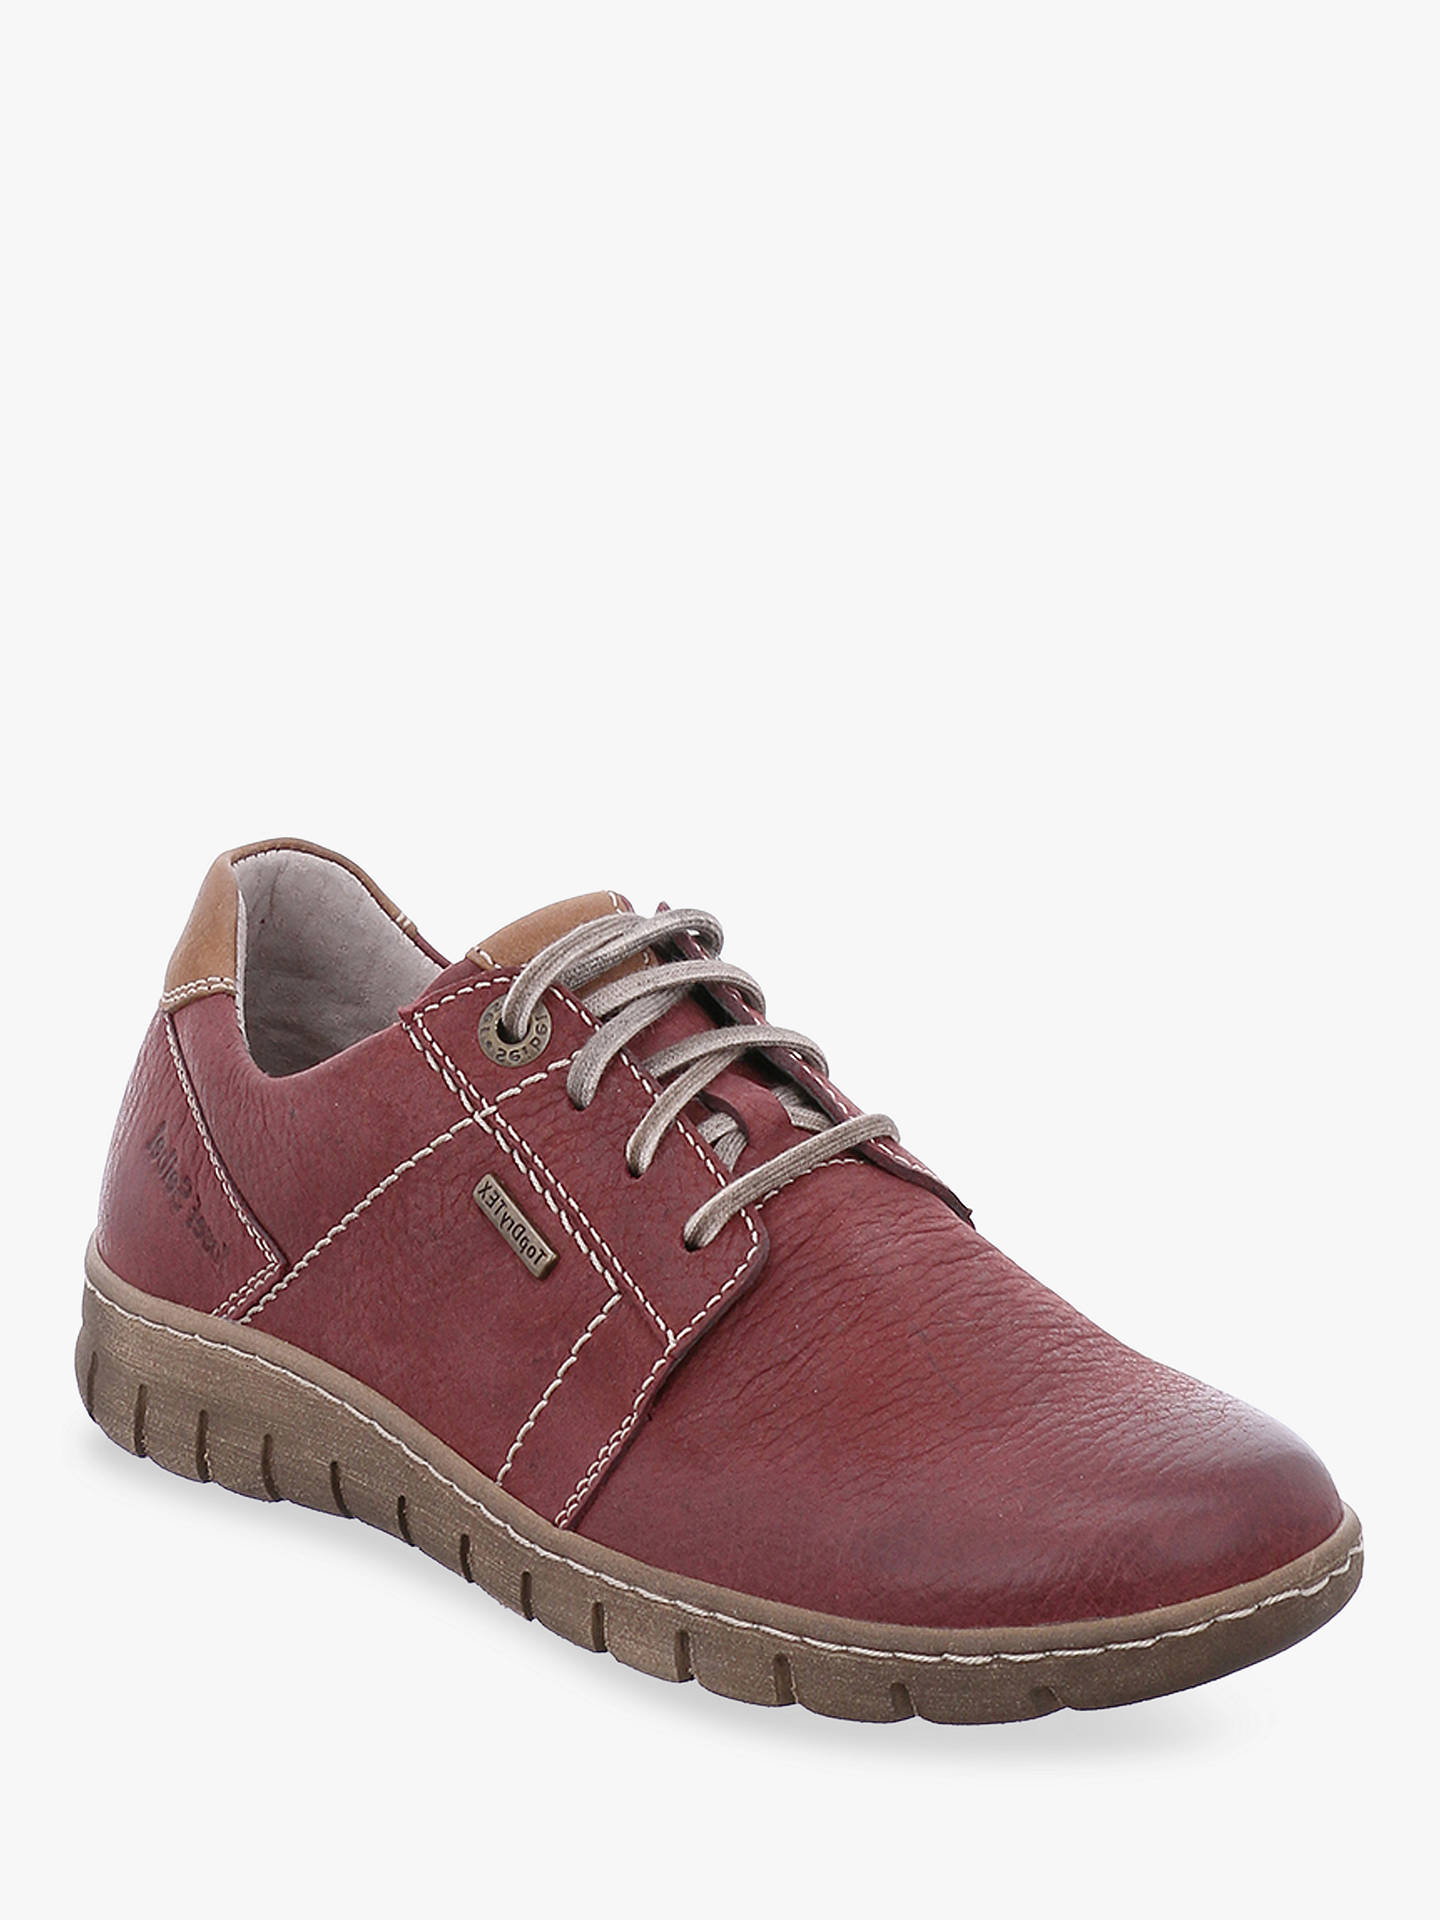 Buy Josef Seibel Steffi 59 Lace Up Trainers, Bordo, 5 Online at johnlewis.com